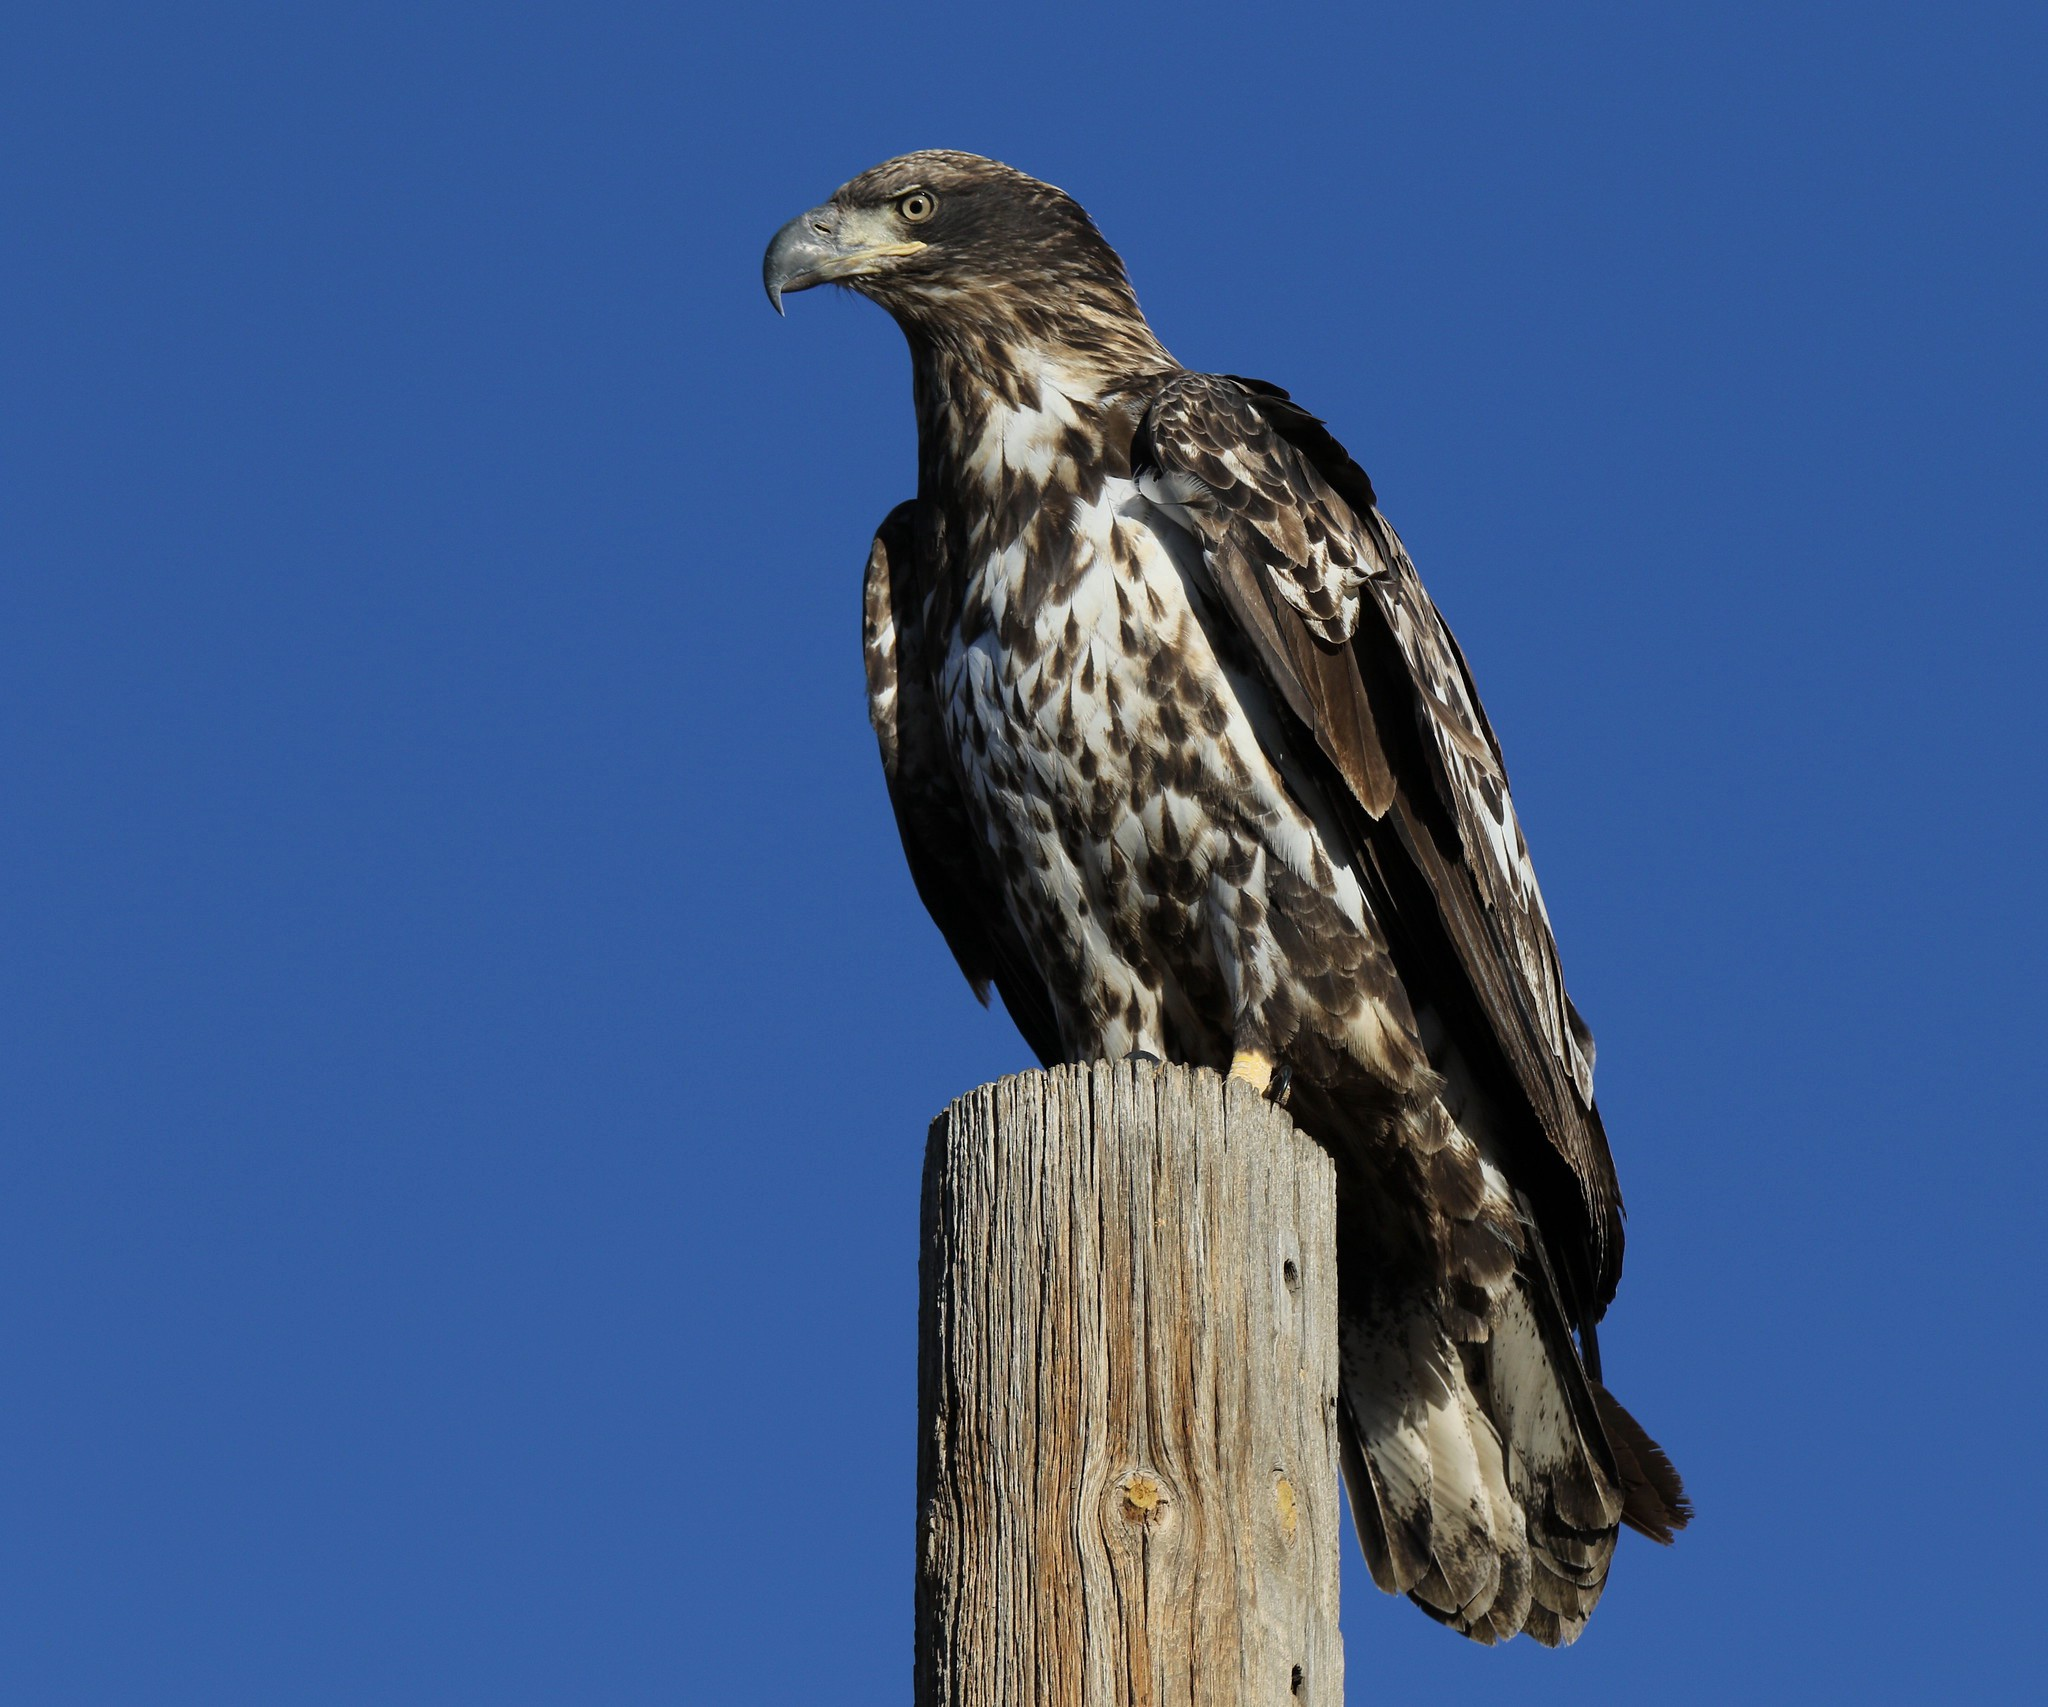 immature bald eagle with white splotchy feathers perched on a utility pole